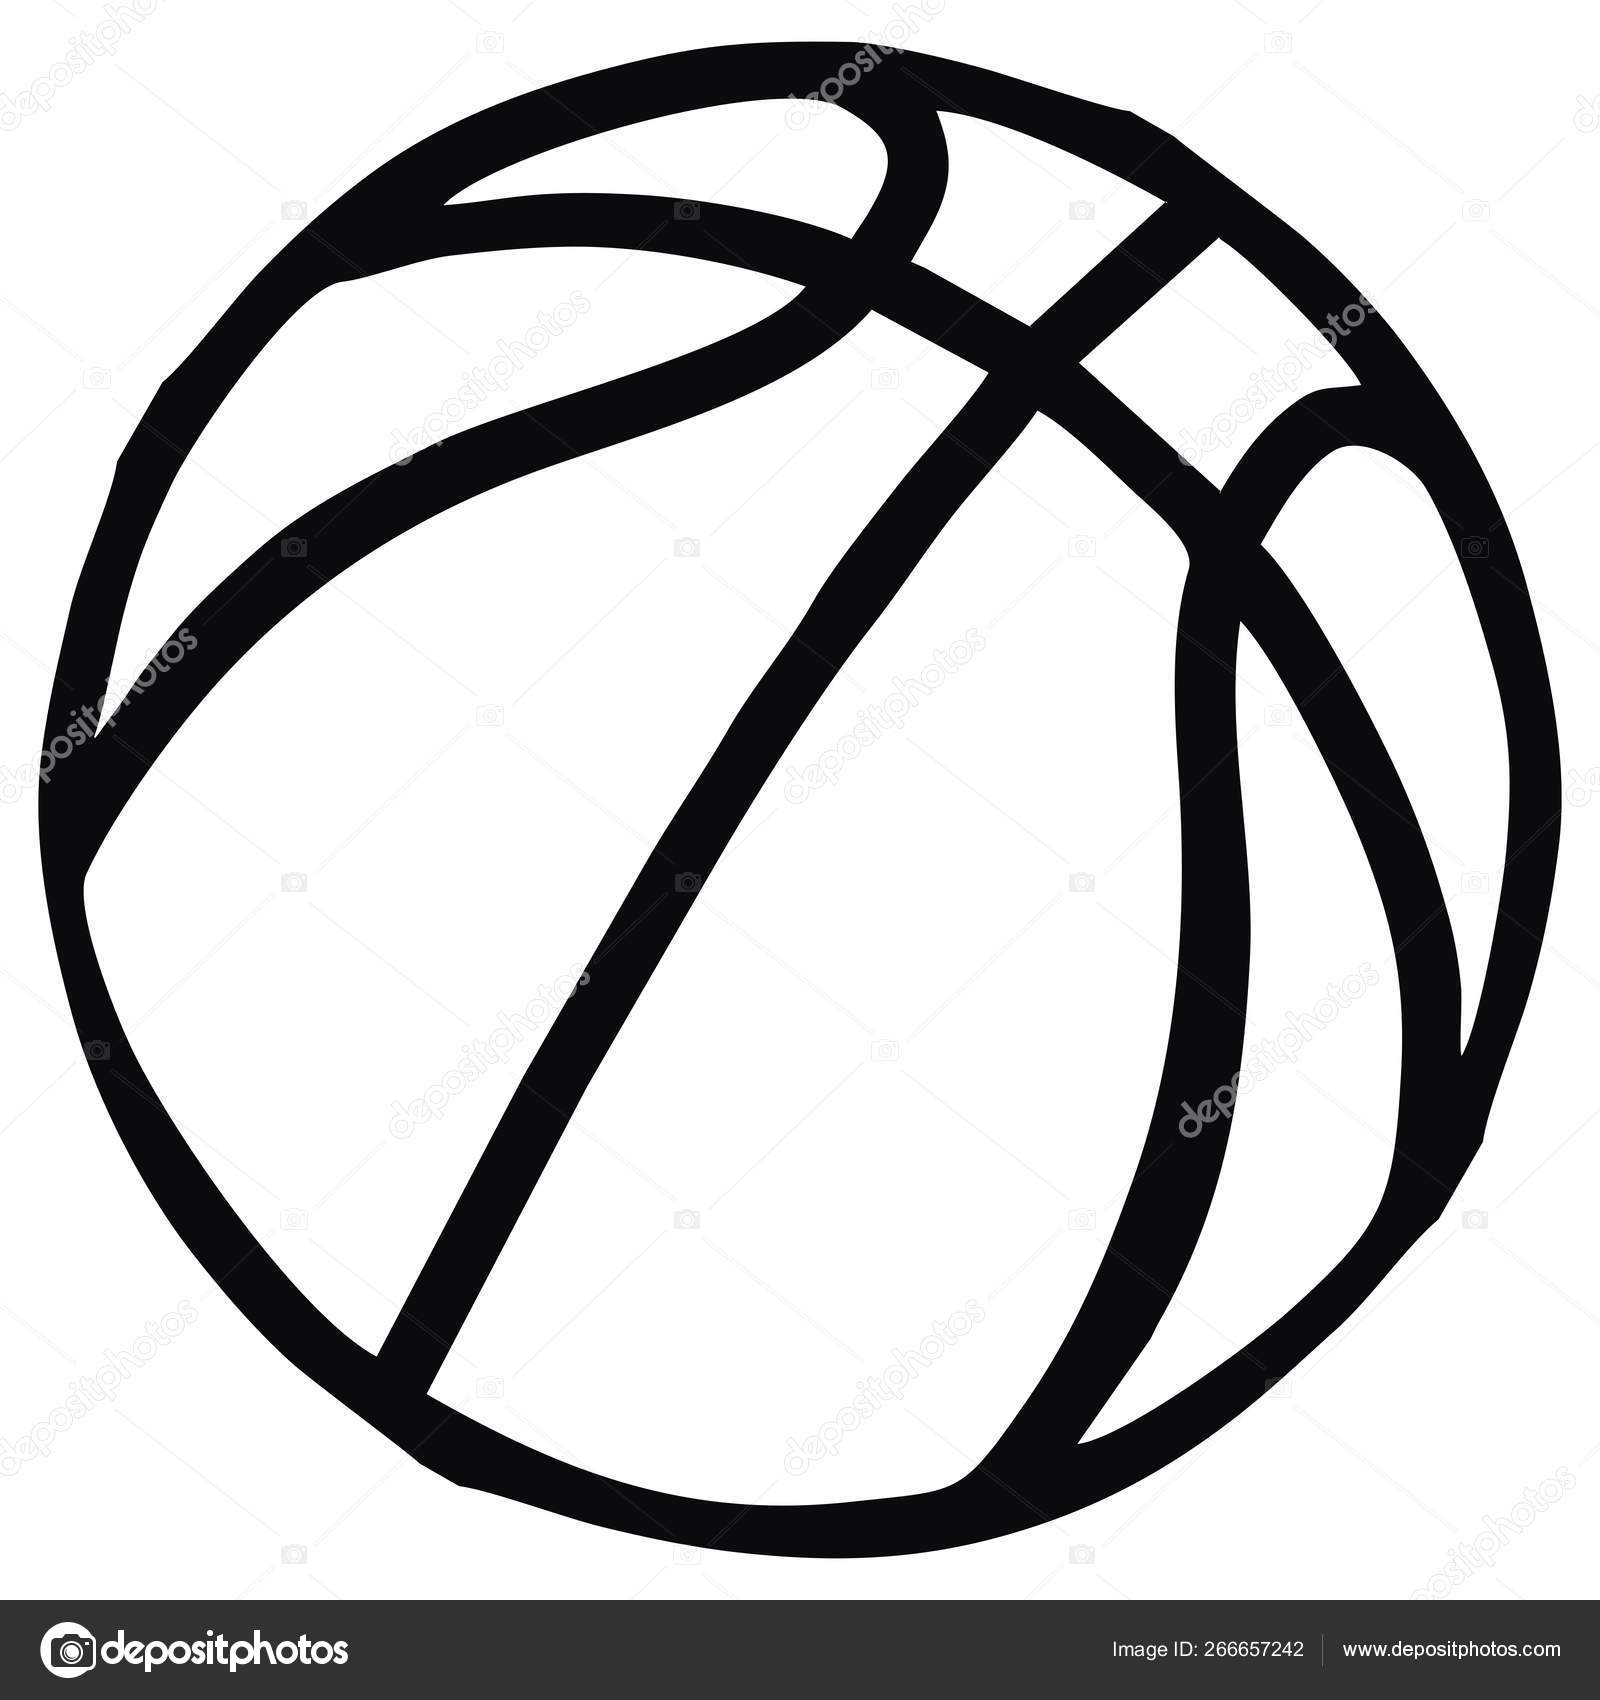 Basketball Single Object Sports Ball Vector Icon Black White Contour Stock Vector C Janista 266657242